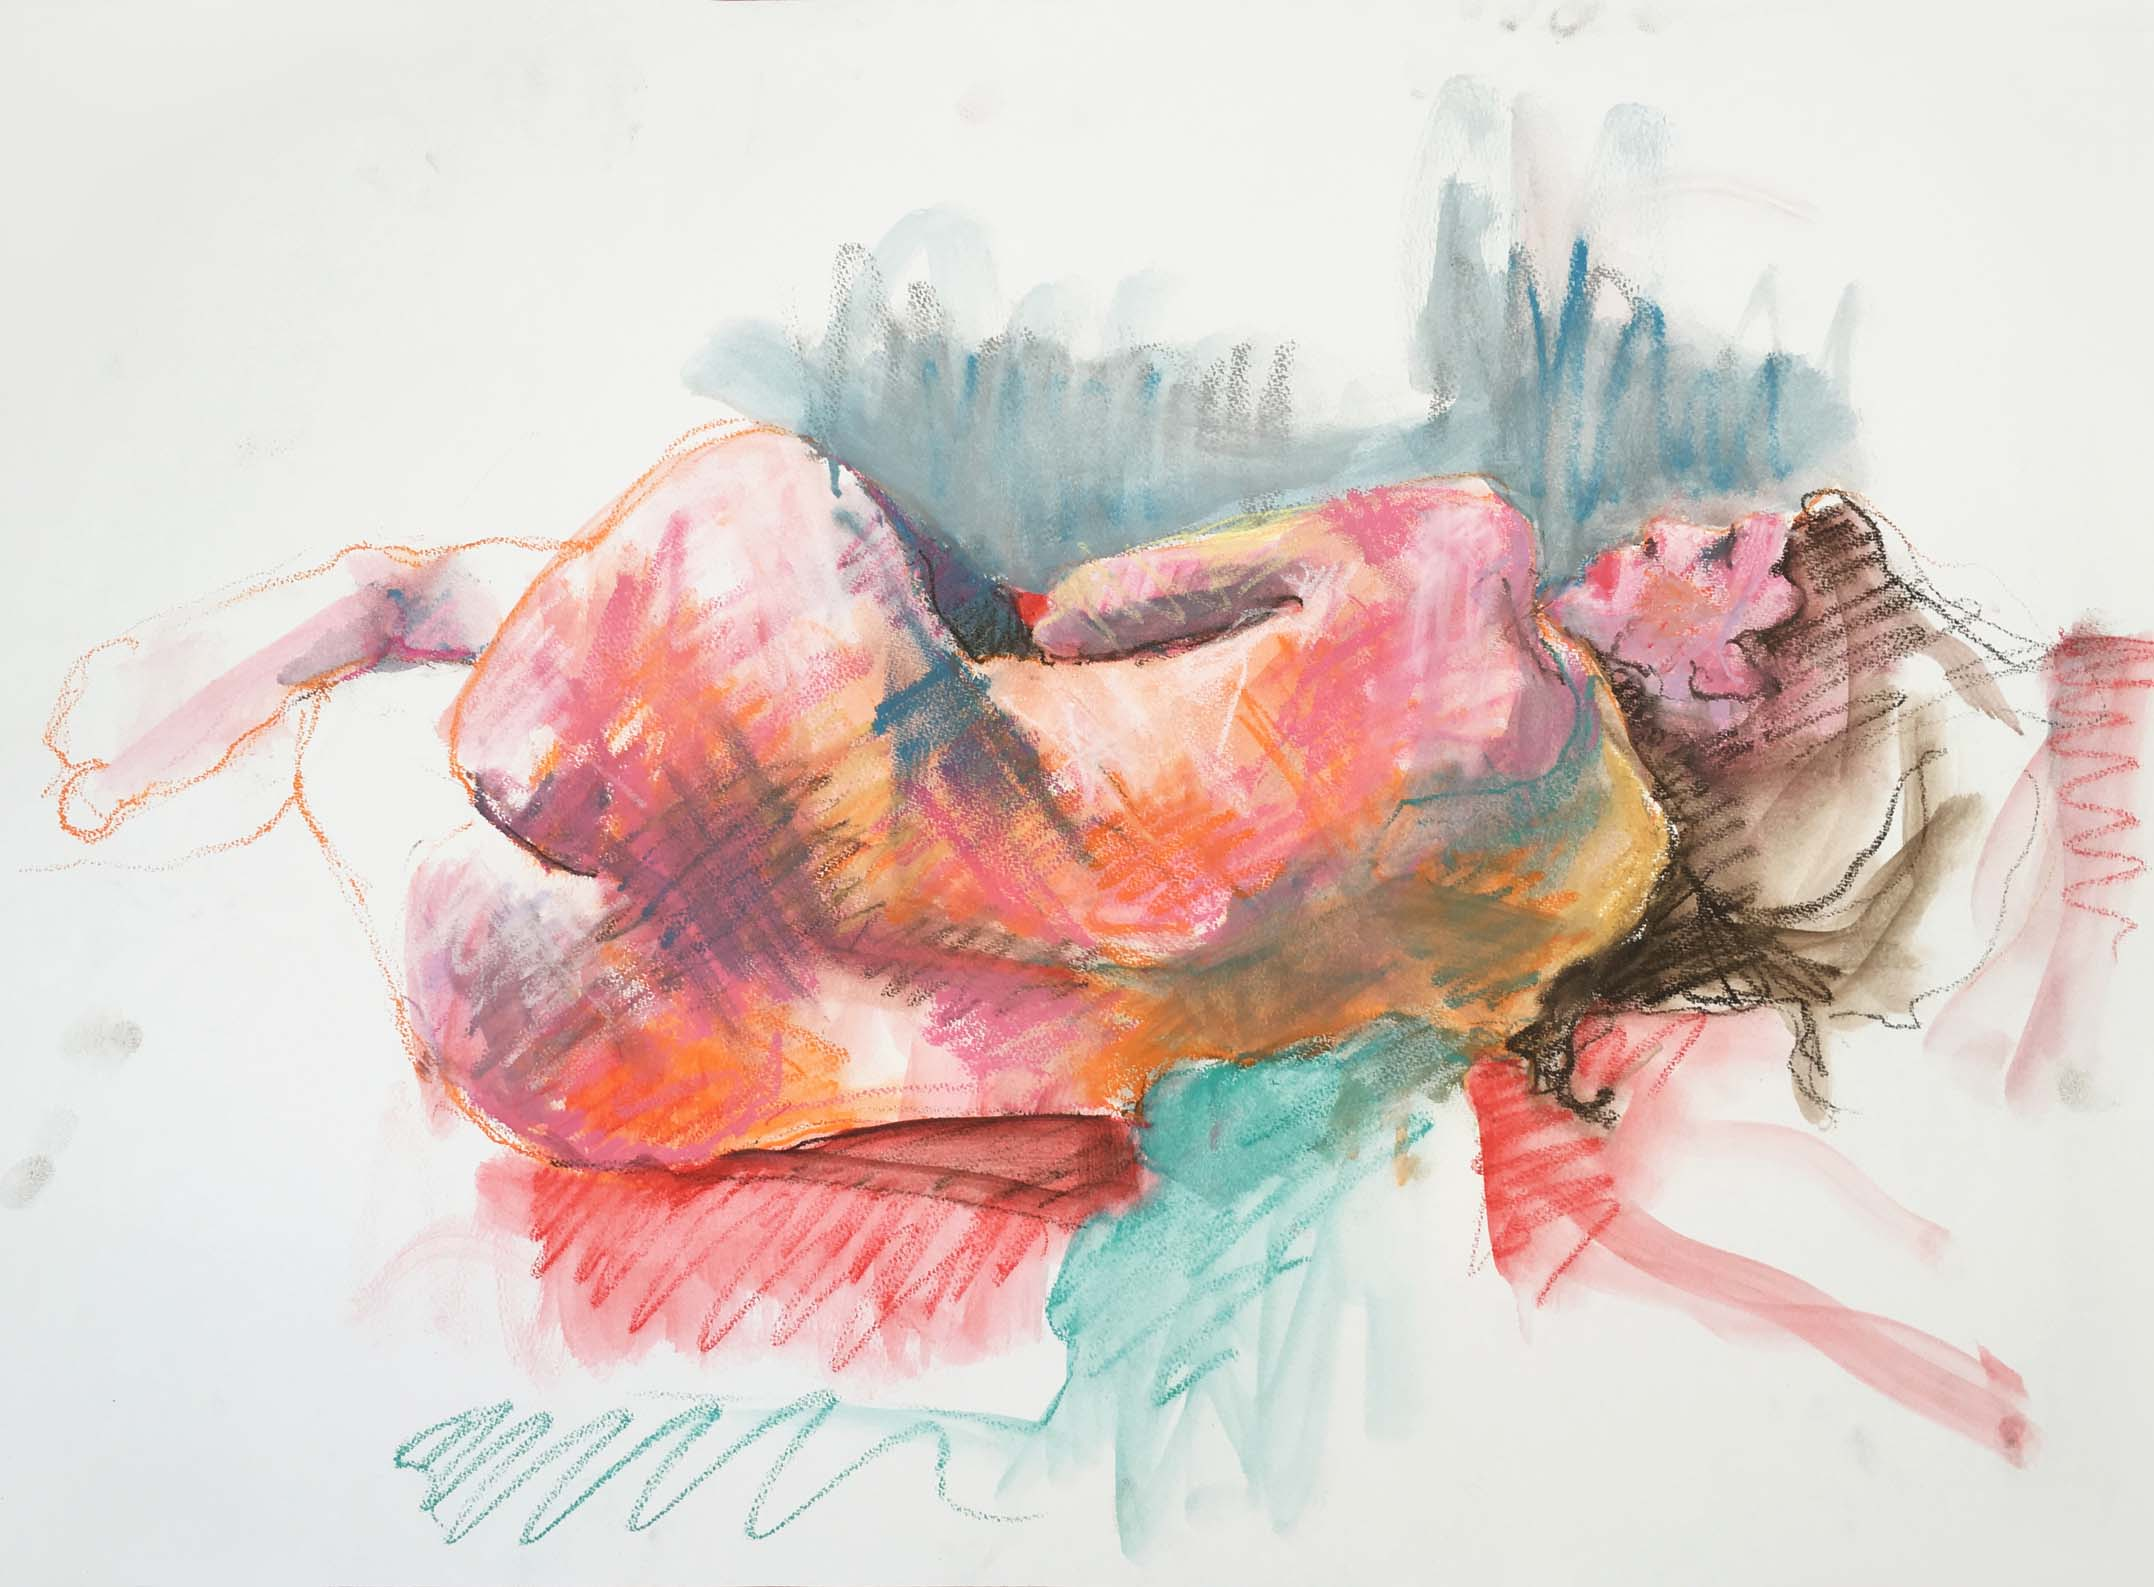 Woman on a Red Cushion, 2005. Oil pastel on paper, w76 x h55 cm (79 x 59cm framed).